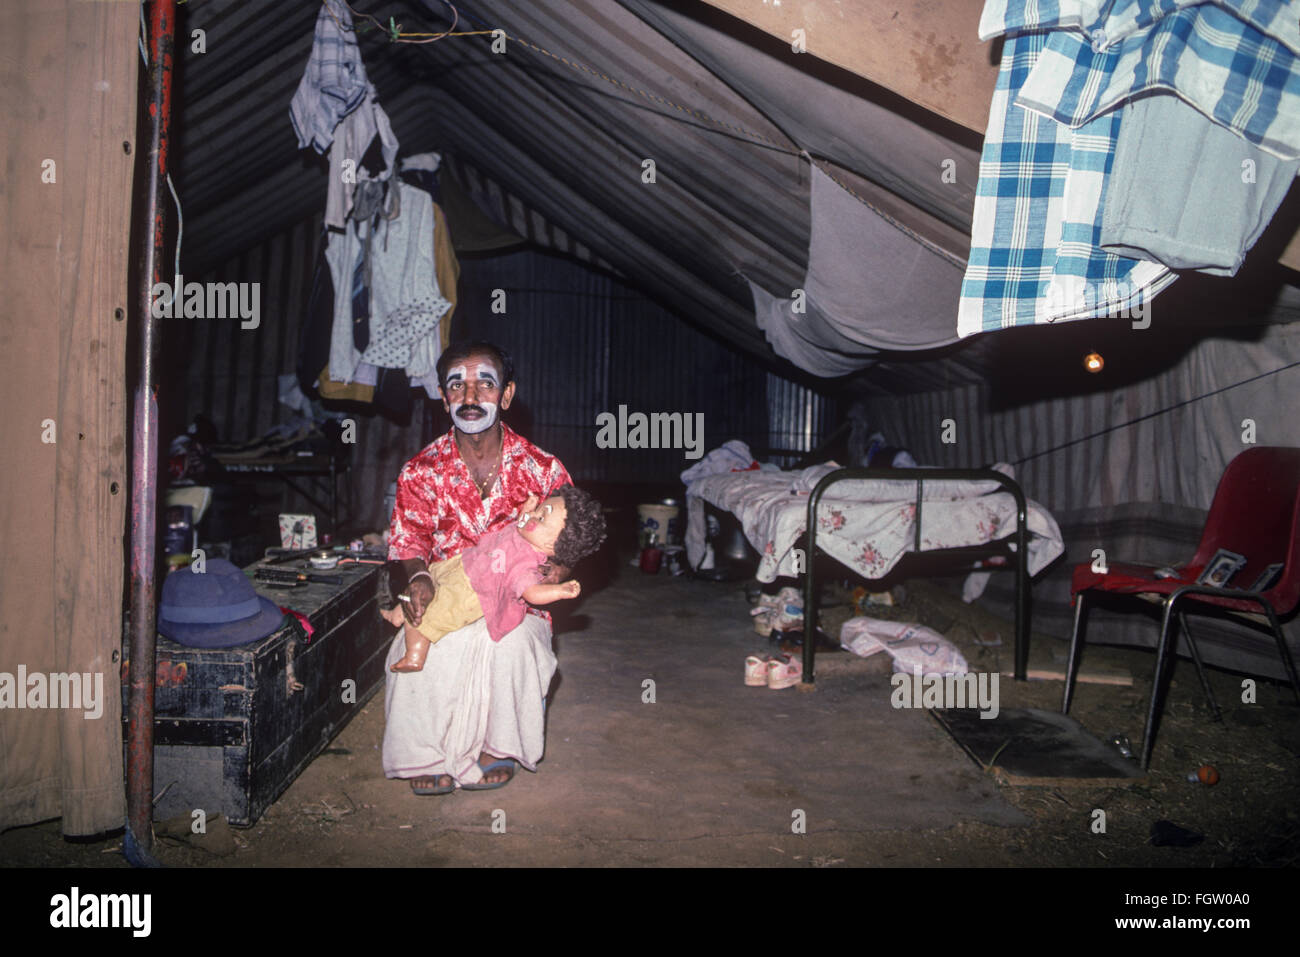 Circus Clown, Great Royal Circus, Bombay, India. - Stock Image